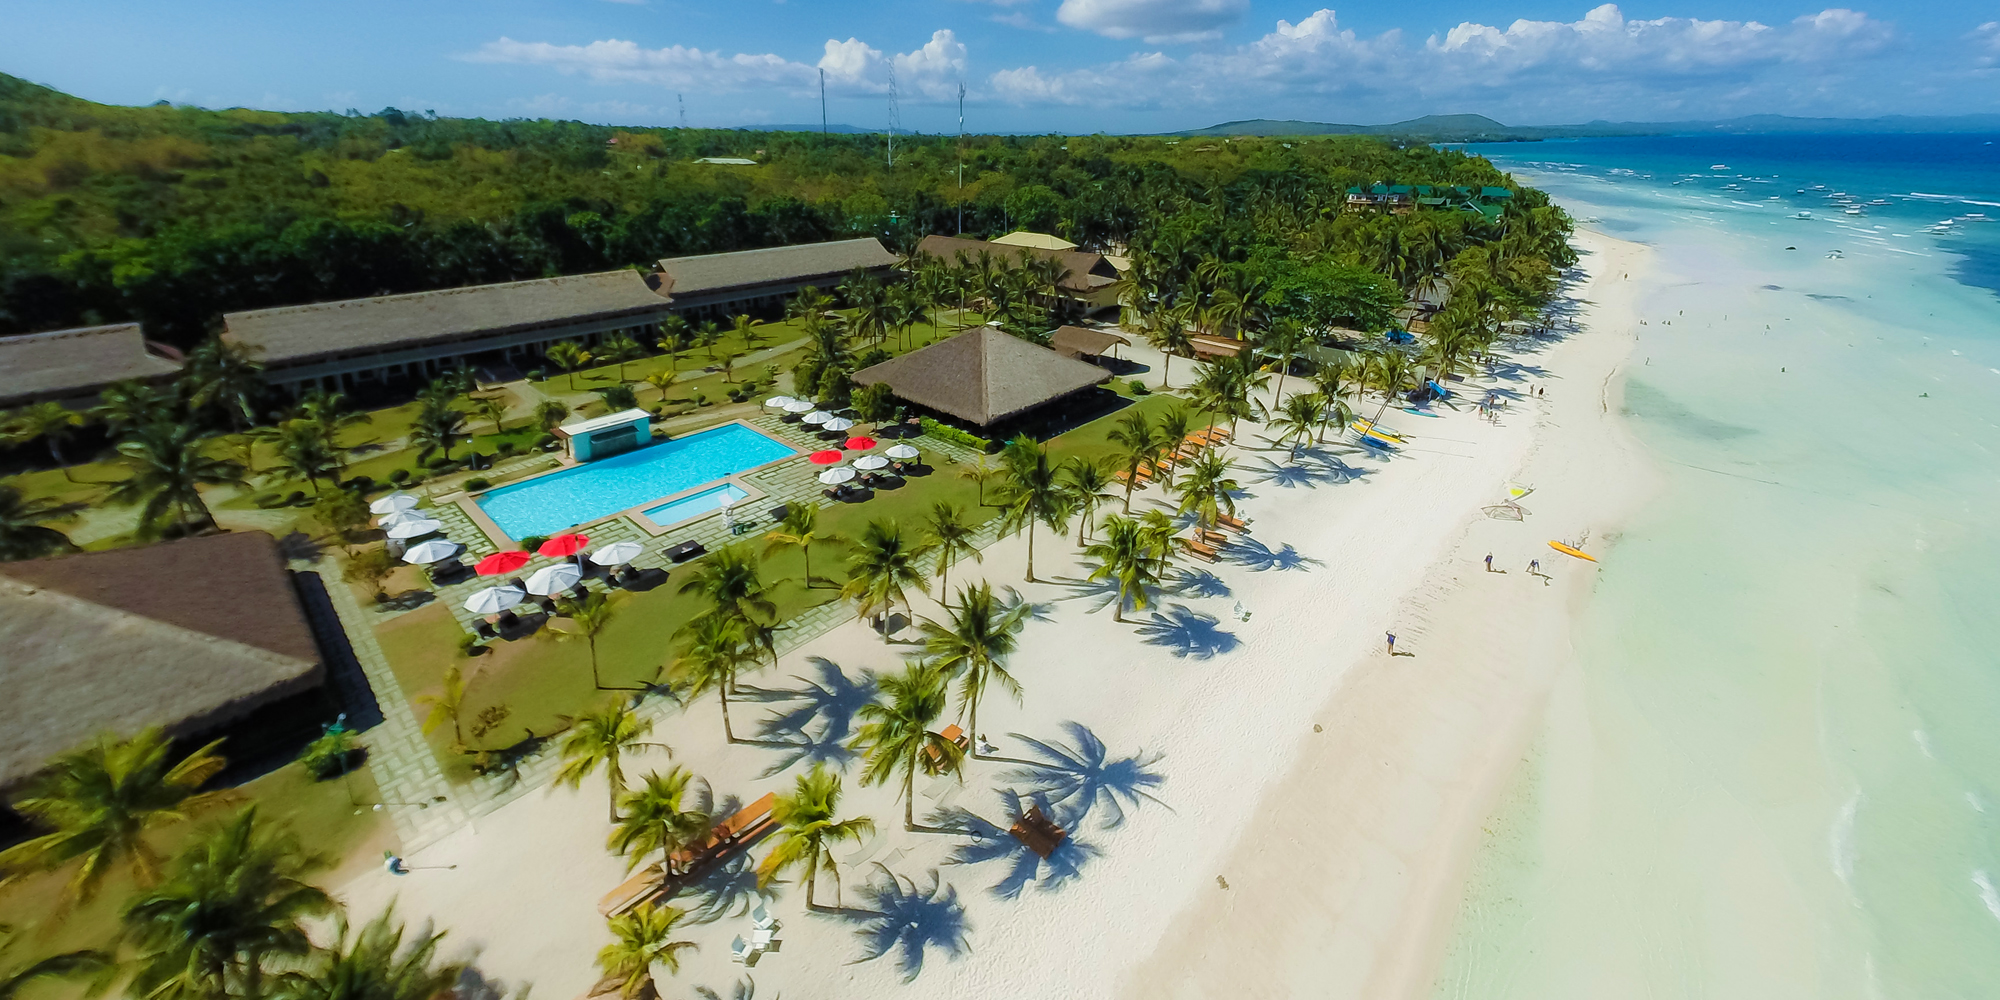 Aerial view of Bohol Beach Club Resort showcasing the pool, and wide private beach